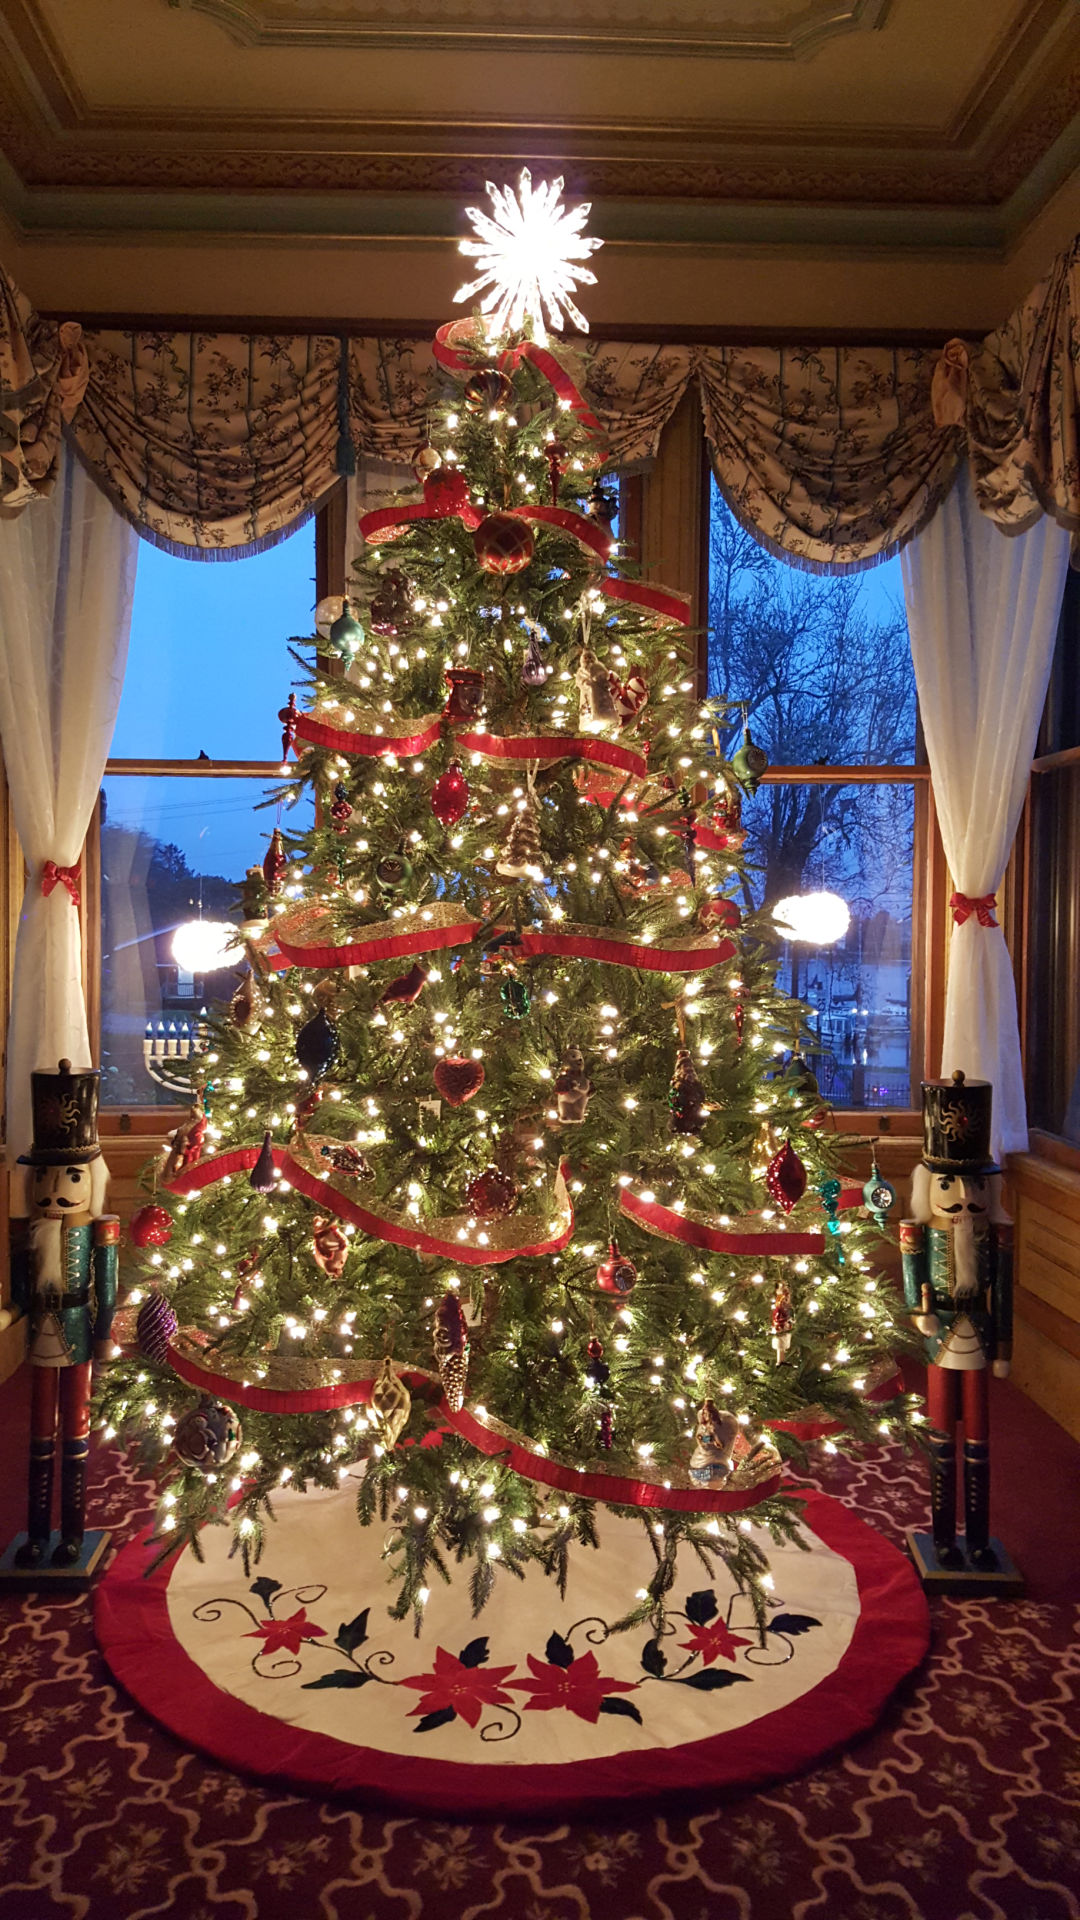 Photos: Entries in our Light It Up! Christmas Tree Photo Contest ...